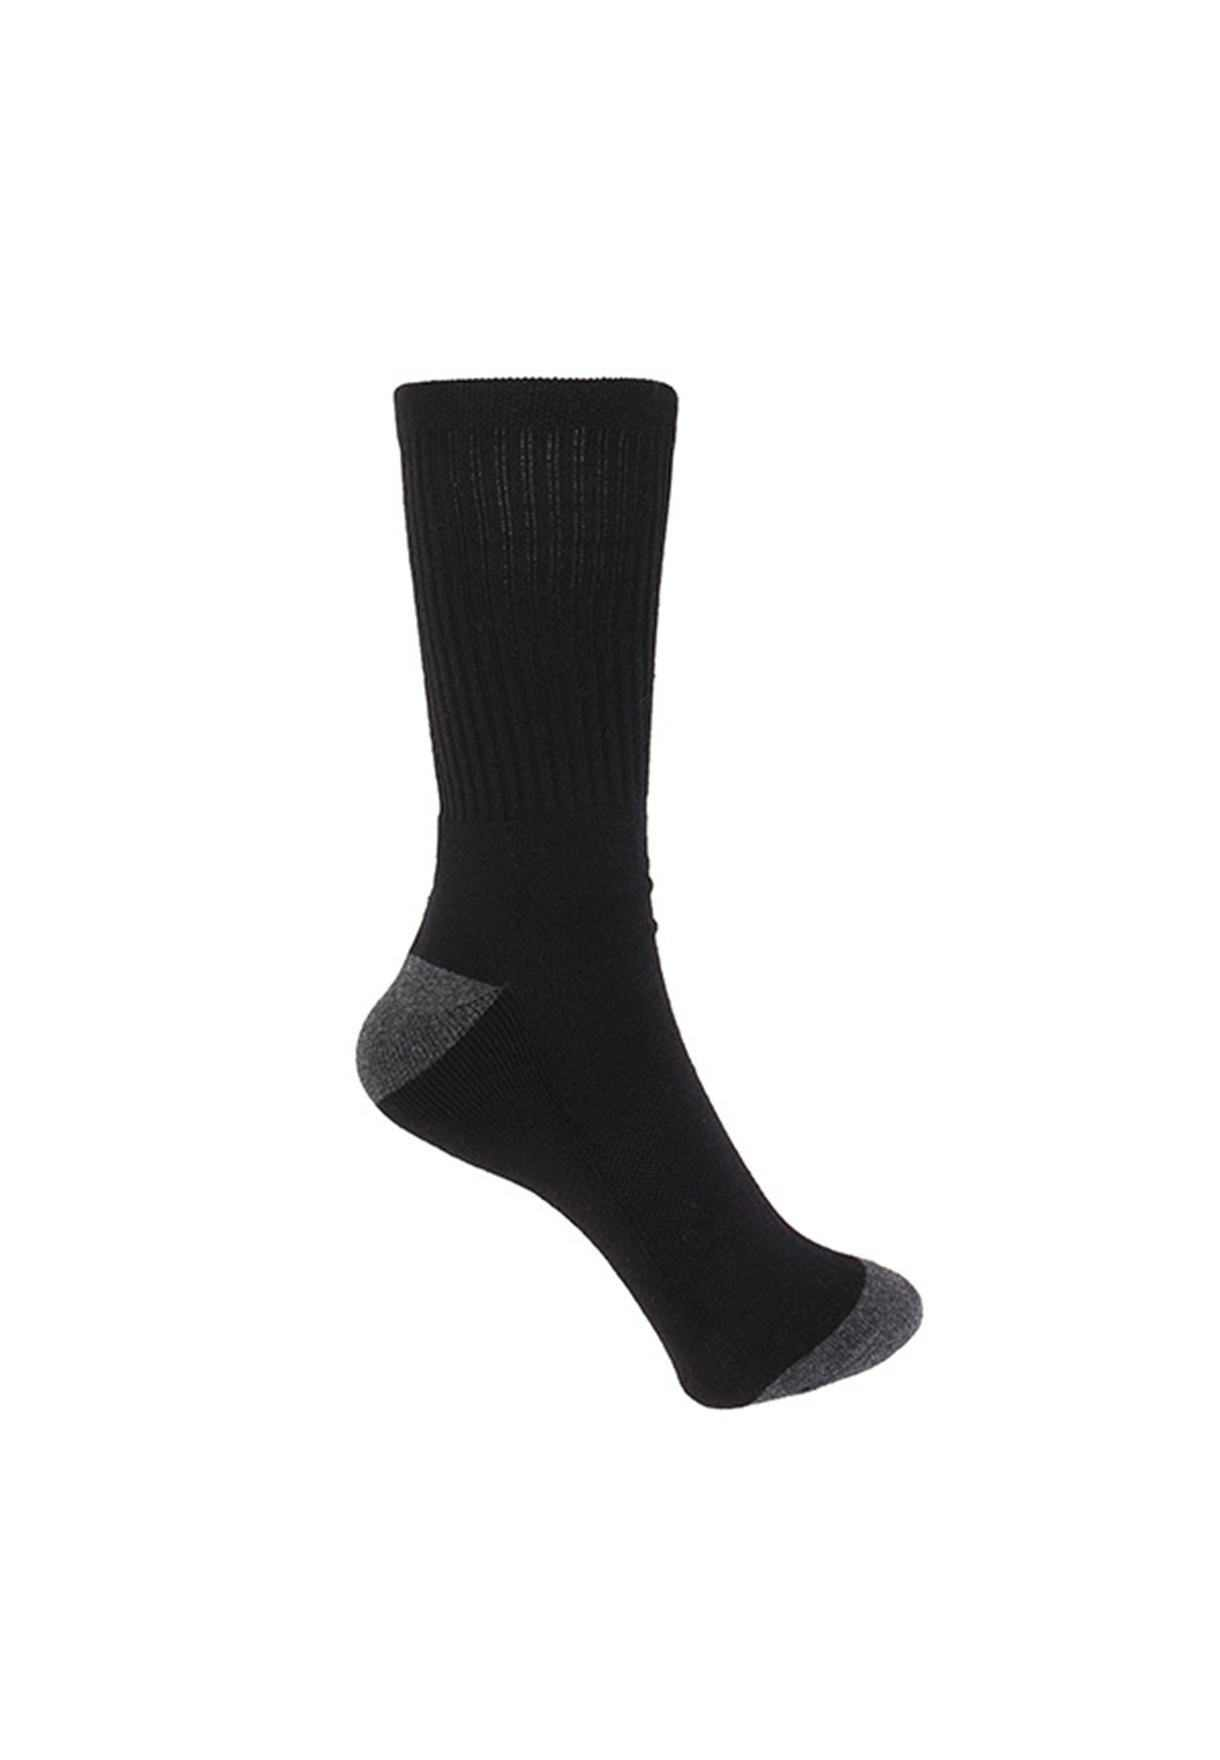 Recardo Mens Socks